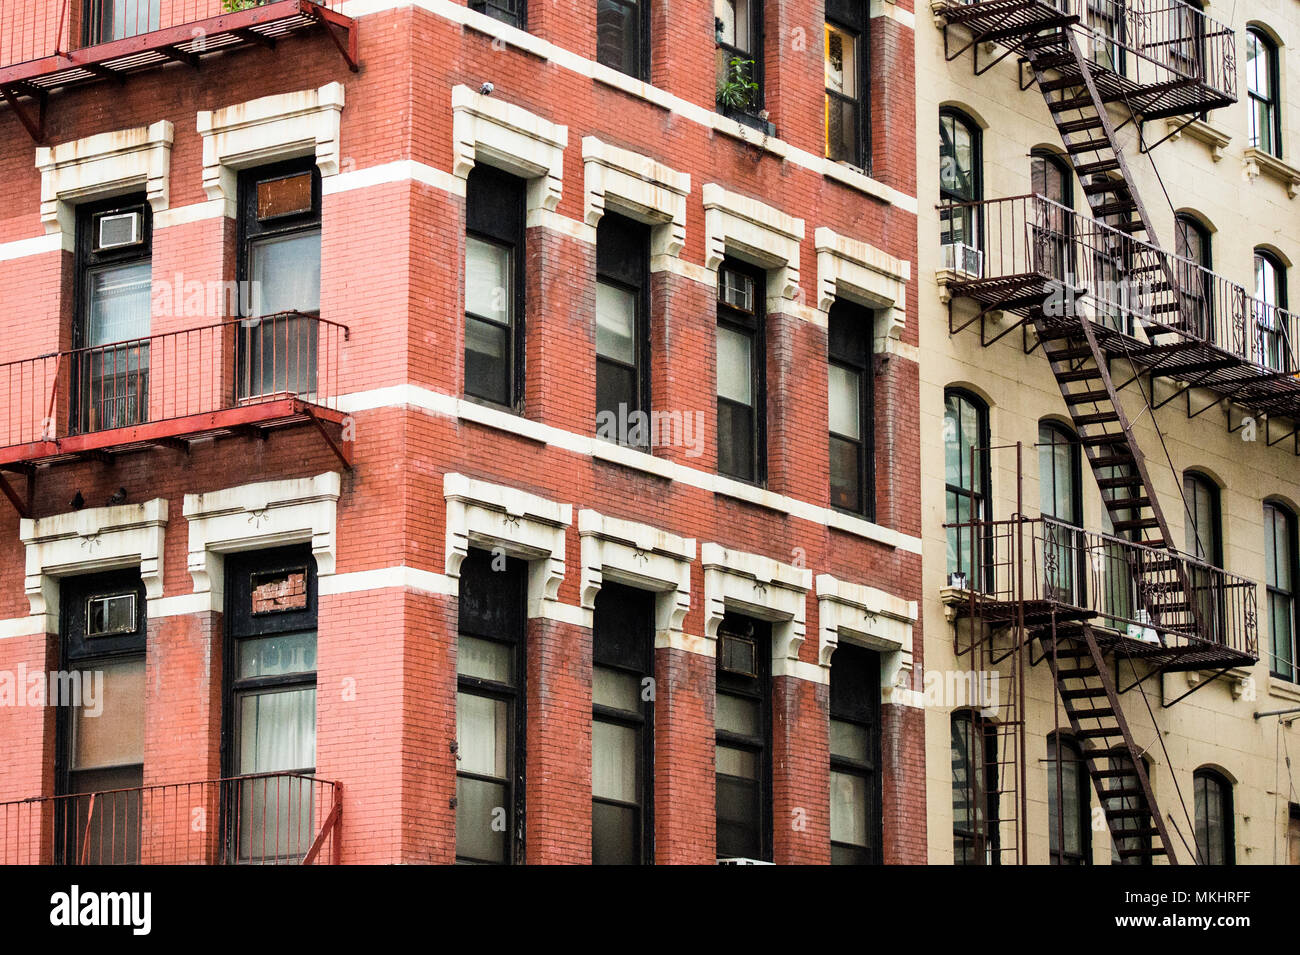 Close-up view of New York City style apartment buildings with emergency stairs along Mott Street in the Chinatown neighborhood of Manhattan NYC. - Stock Image